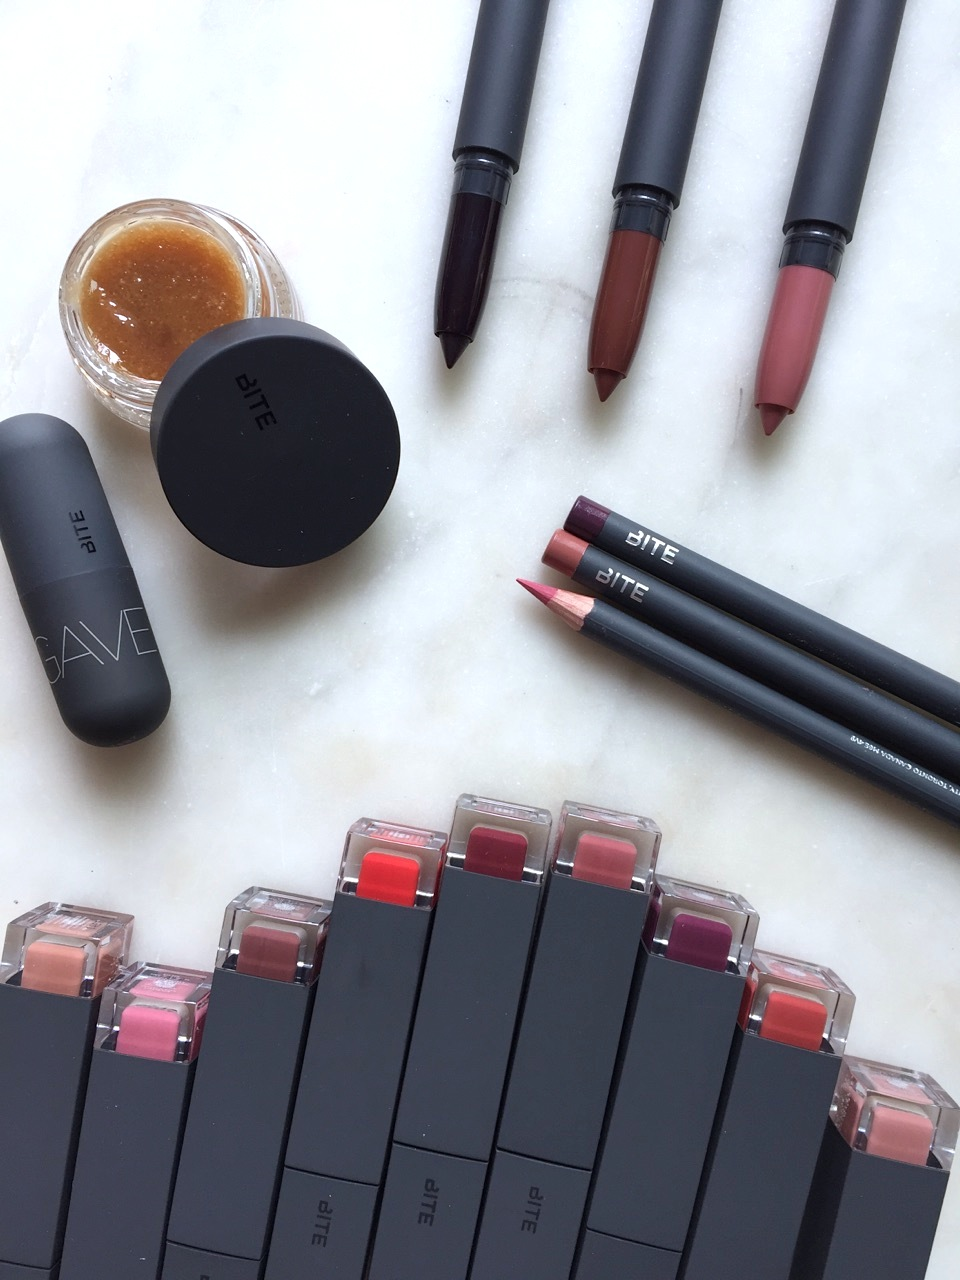 Bite Beauty Amuse Bouche Liquified Lipstick: A quick review